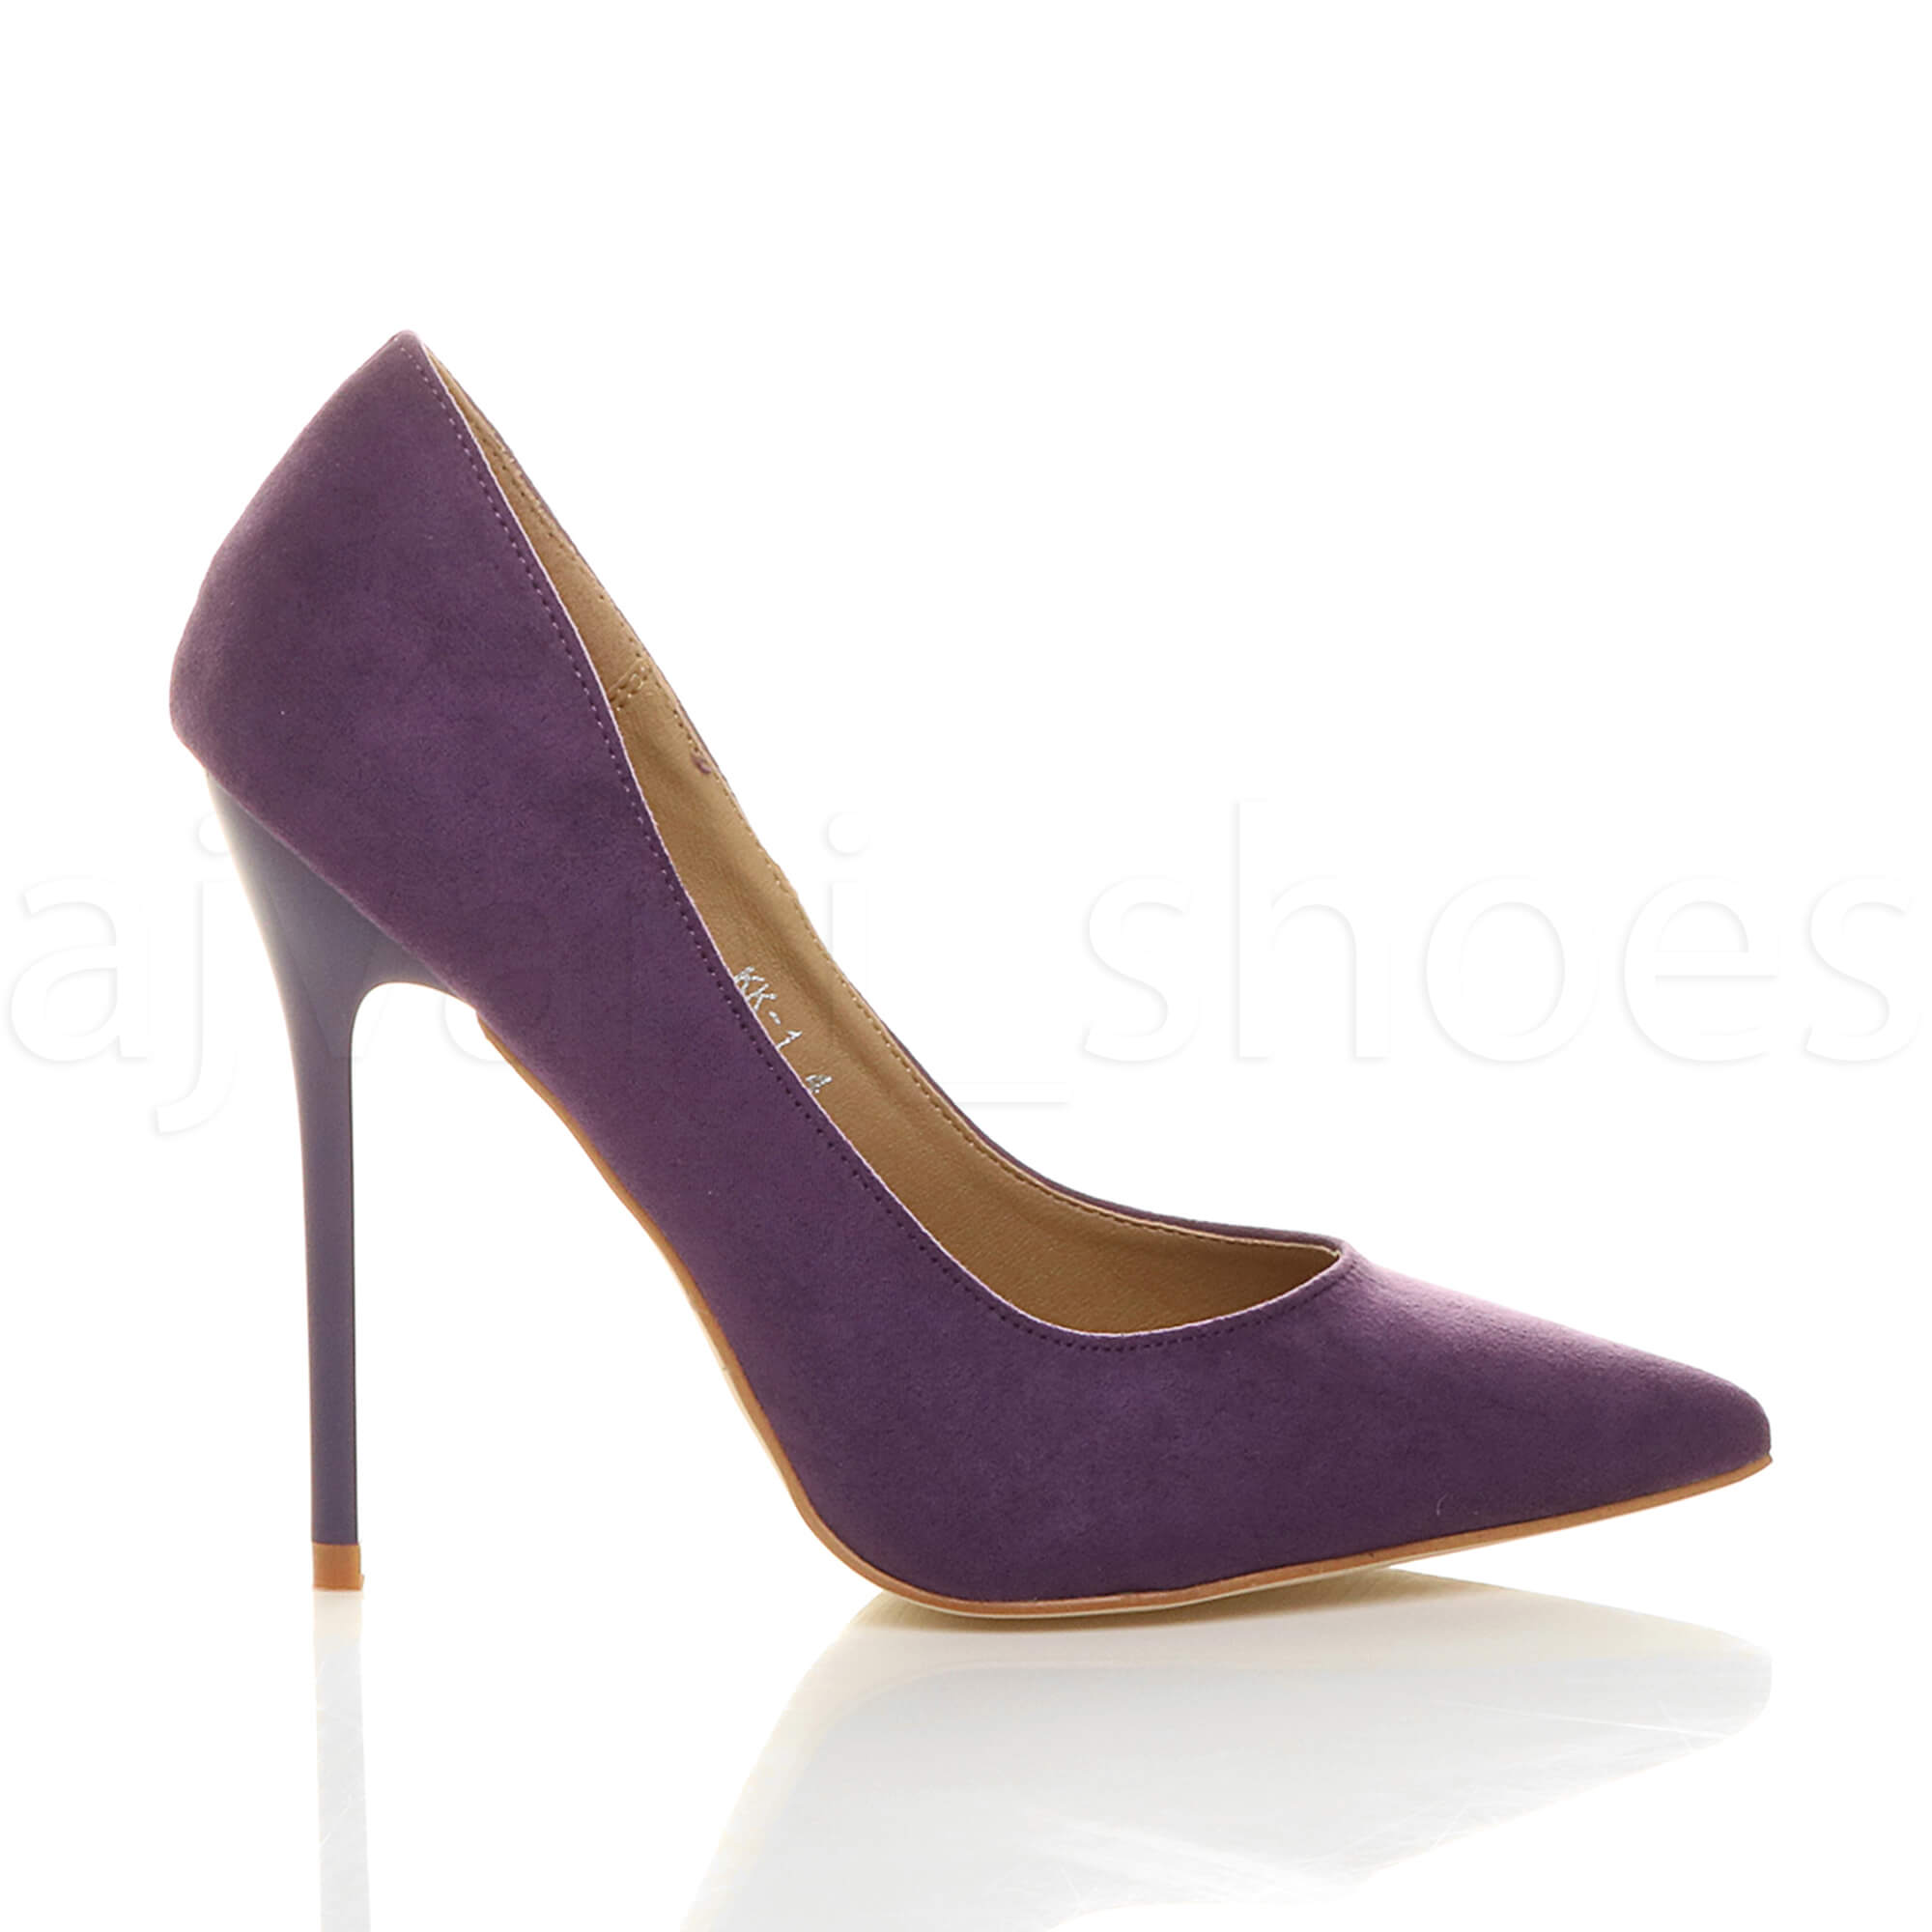 WOMENS-LADIES-HIGH-HEEL-POINTED-CONTRAST-COURT-SMART-PARTY-WORK-SHOES-PUMPS-SIZE thumbnail 153